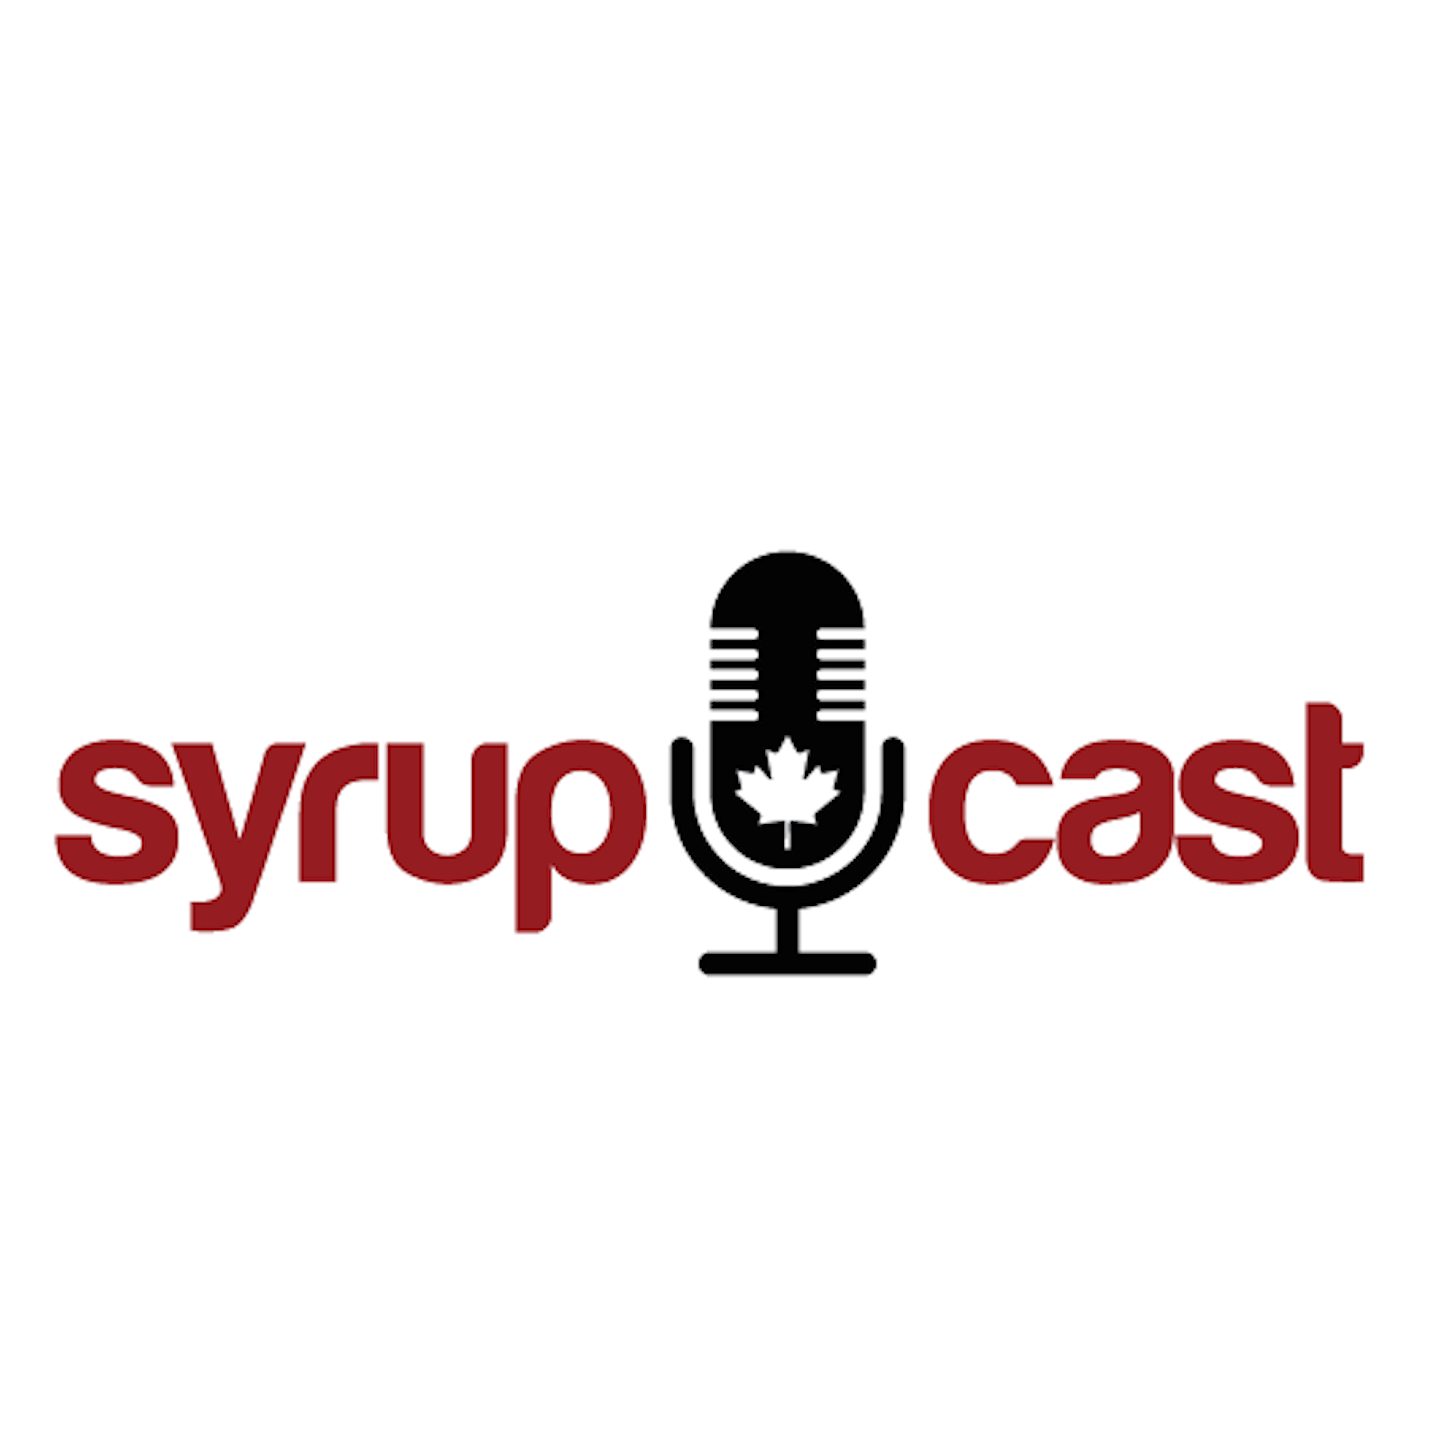 SyrupCast 72: Pebble, Motorola, Microsoft, Bell… all killer no filler